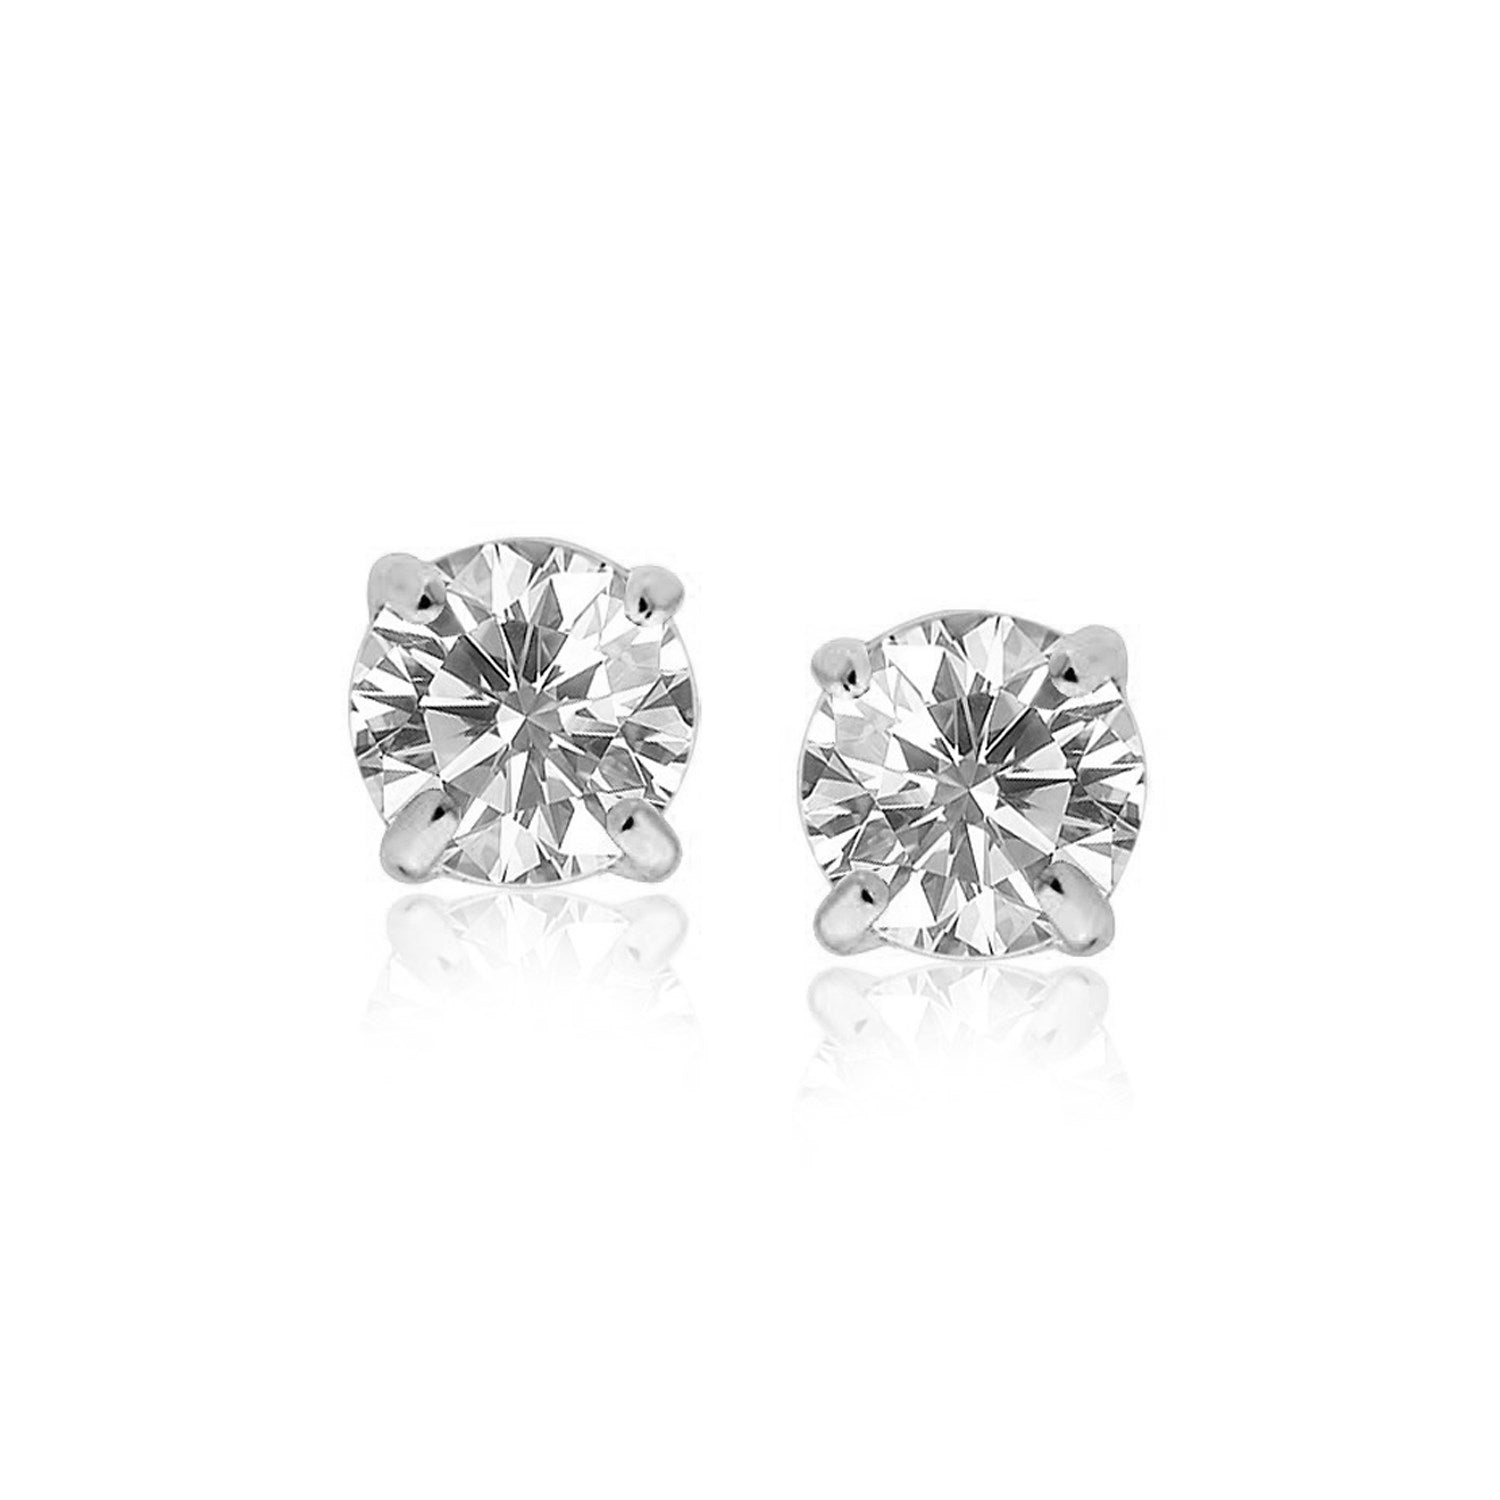 Sterling Silver 8.0mm Round CZ Stud Earrings